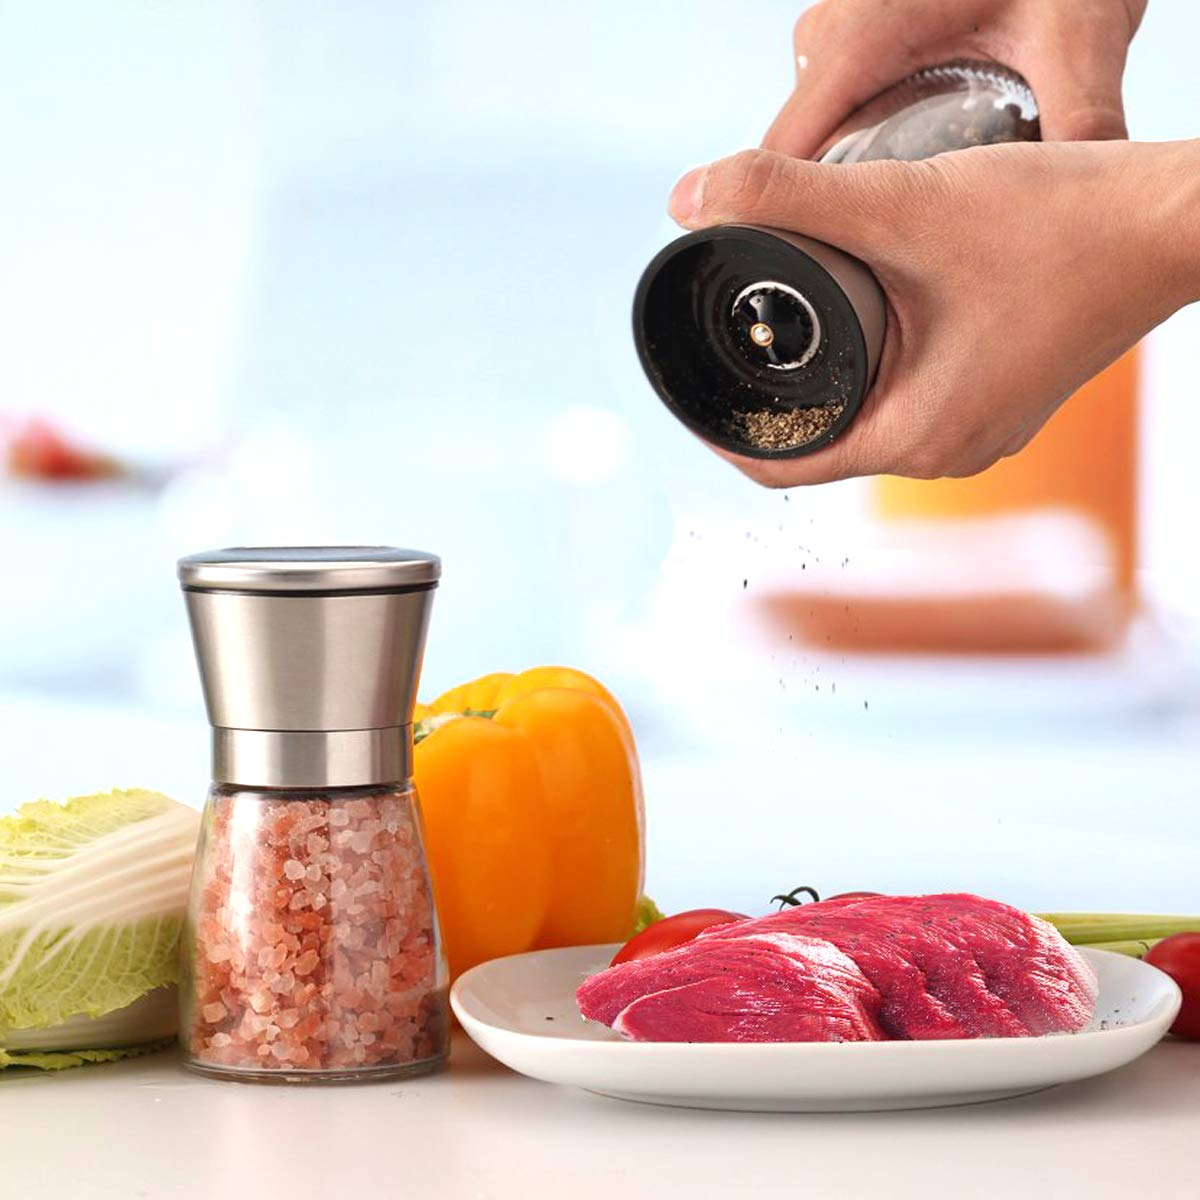 Salt and Pepper Grinder Set HENSHOW Pack of 2 Premium Brush Stainless Steel Salt Pepper Mill Set and Glass Body Salt and Pepper Shakers with Adjustable Ceramic Coarseness for Cooking BBQ